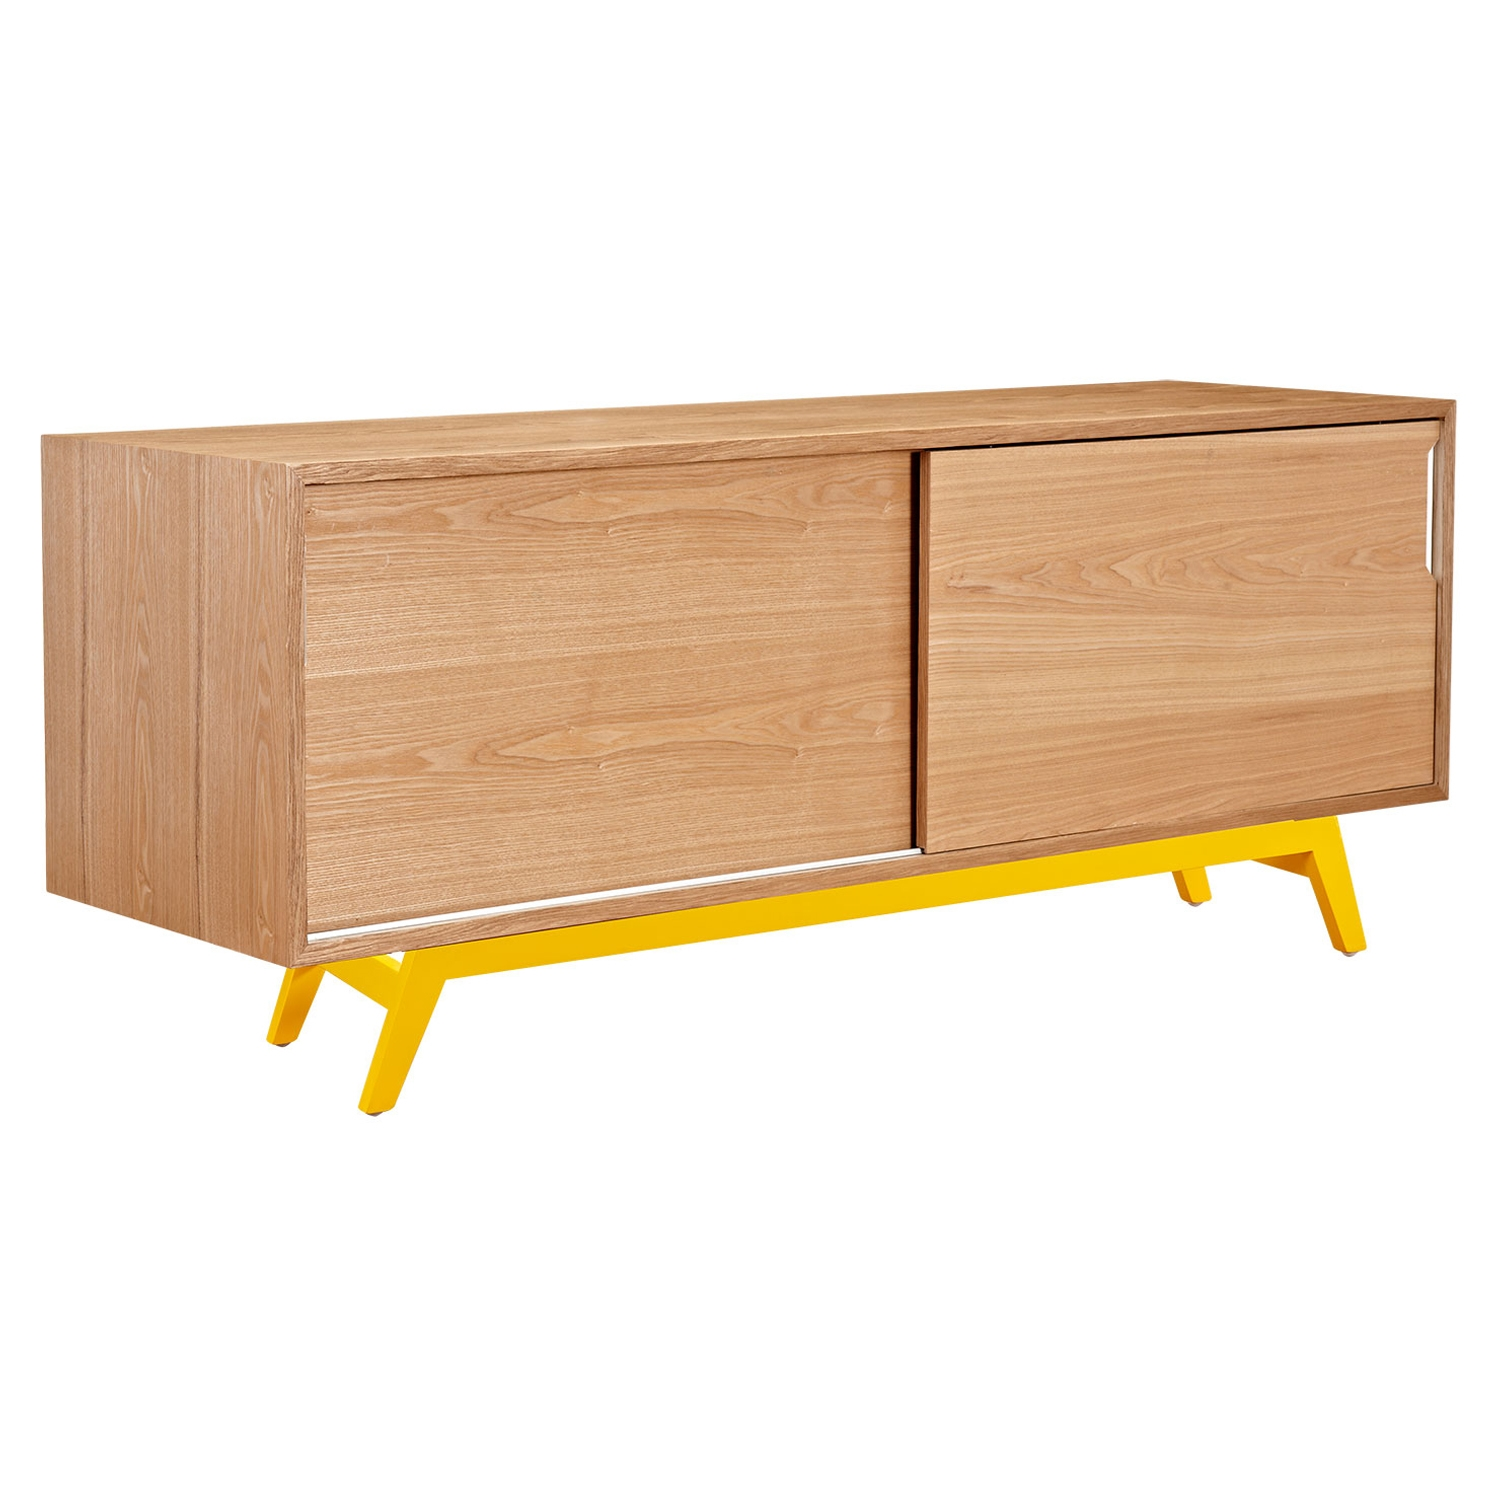 Elsa 2 Sliding Doors Sideboard - Natural - NYEK-224403